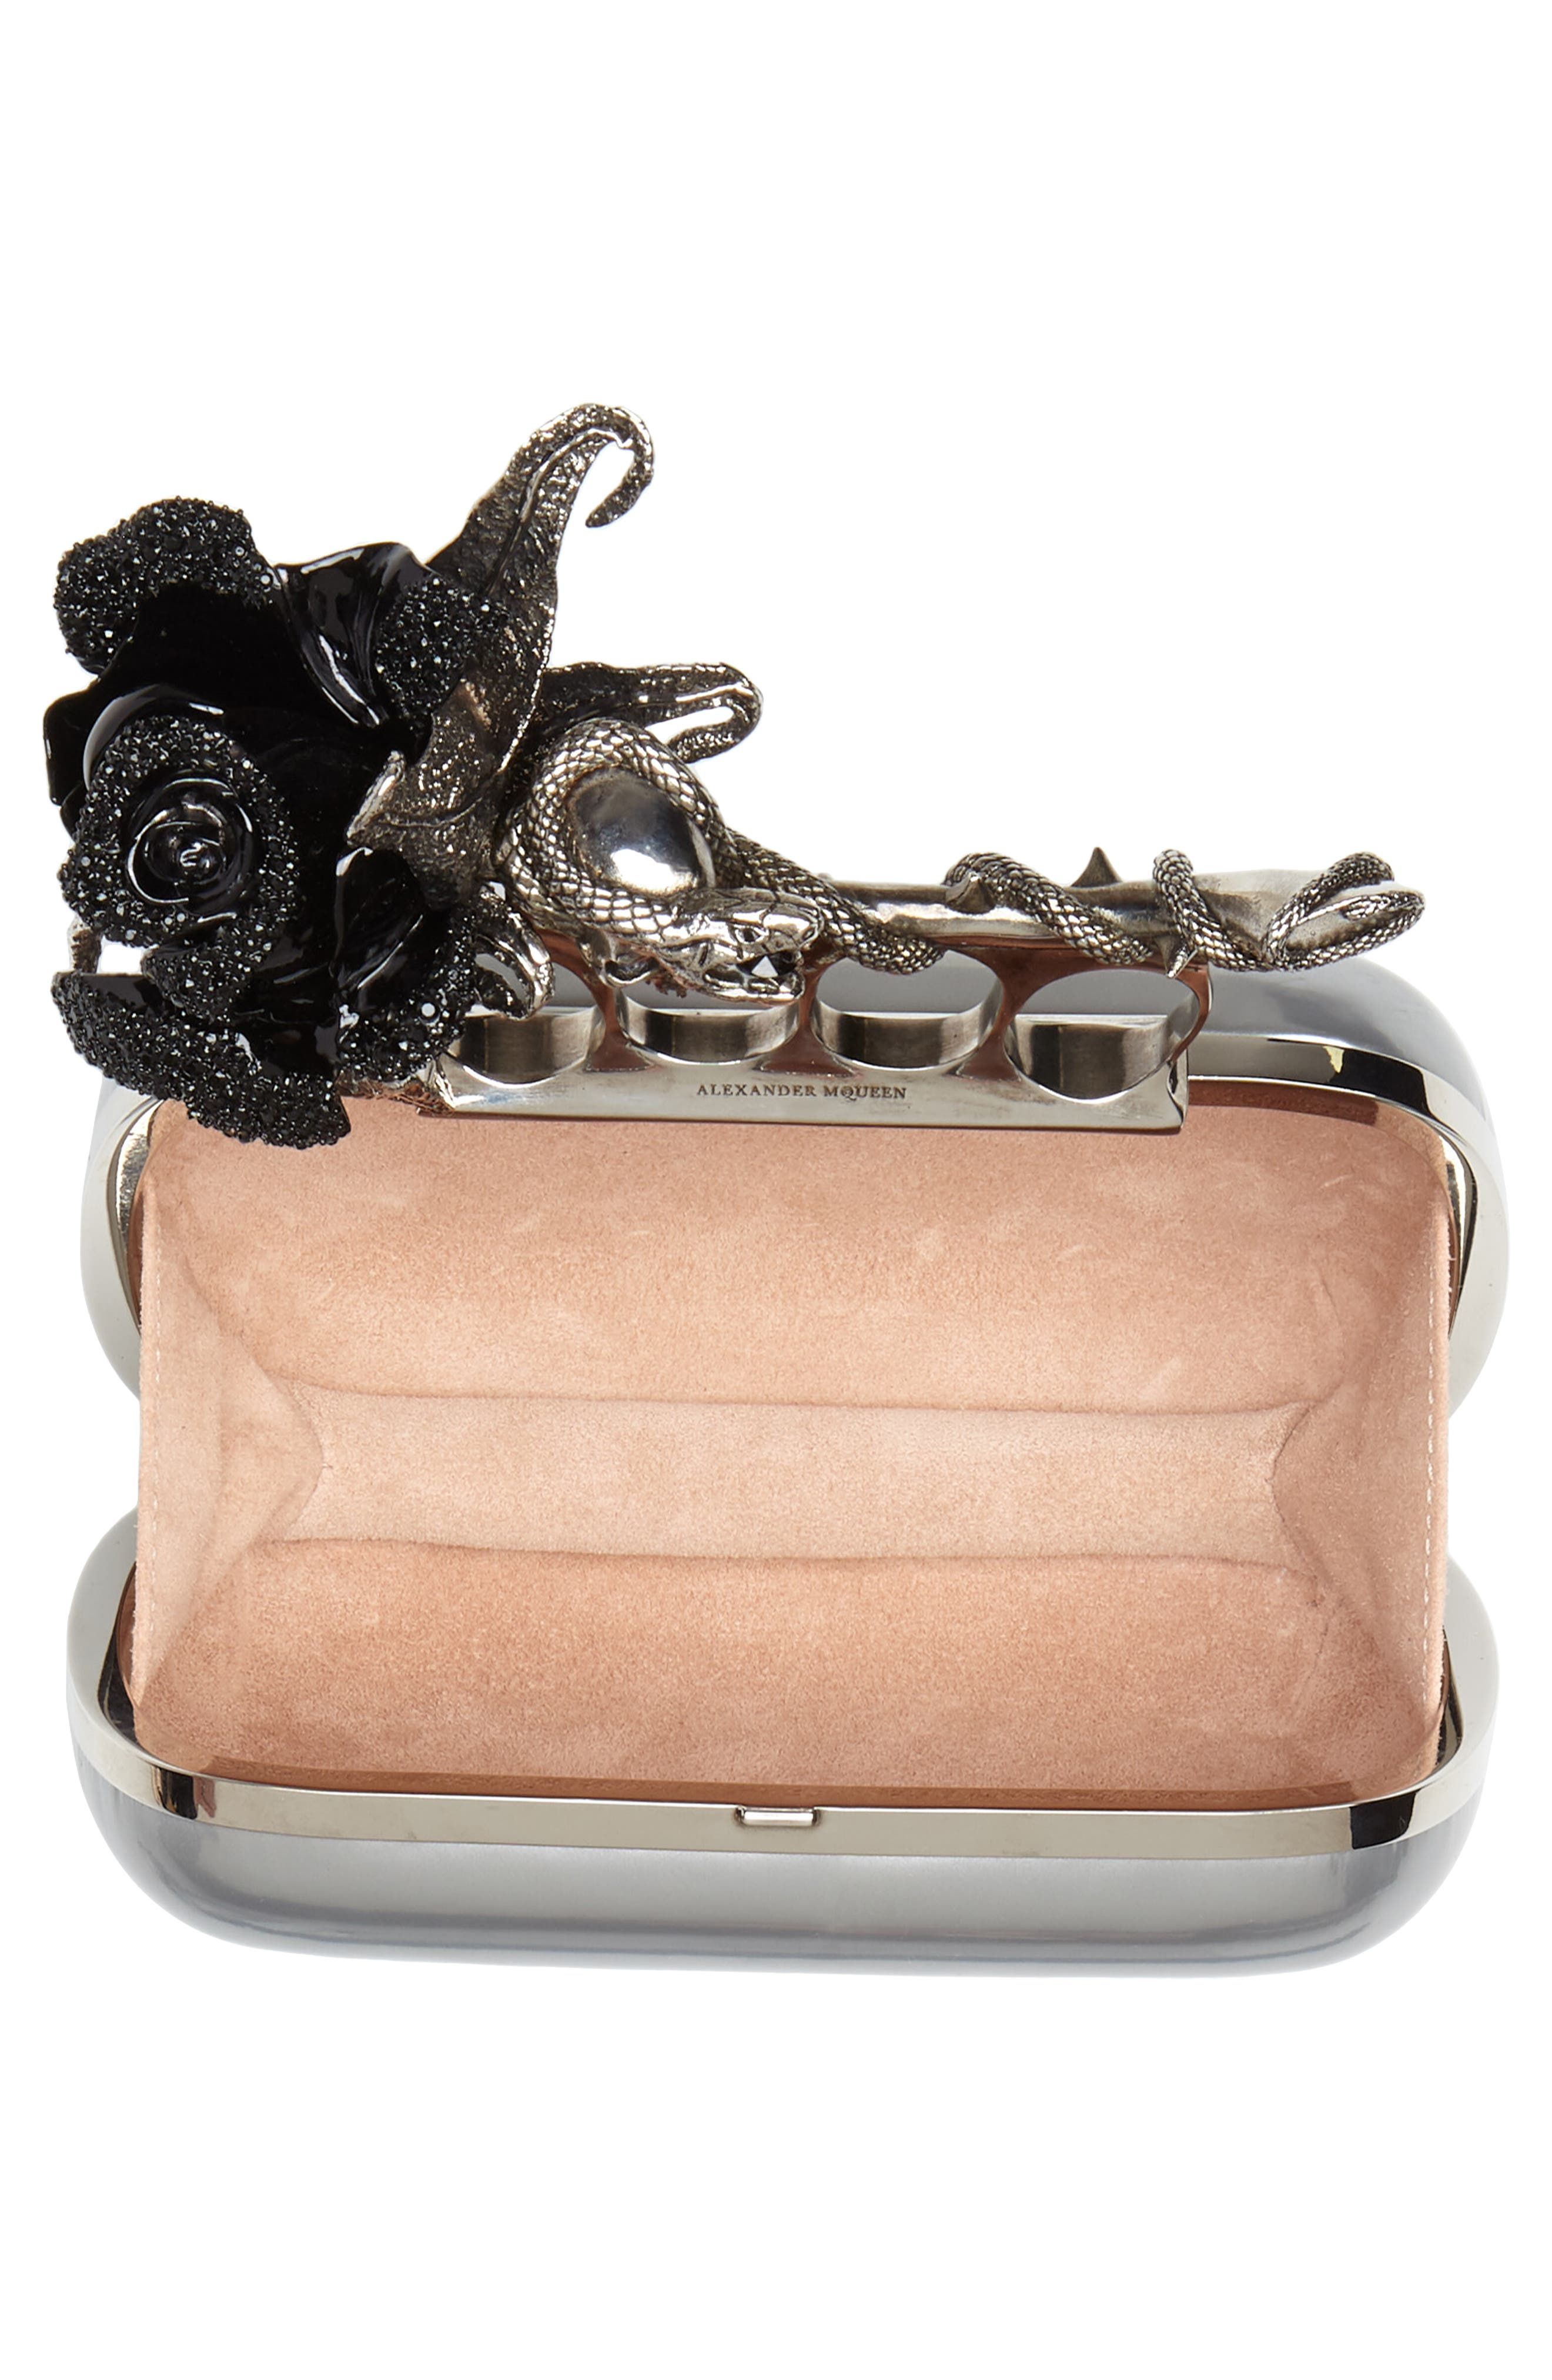 Knuckle Clasp Metallic Leather Box Clutch,                             Alternate thumbnail 4, color,